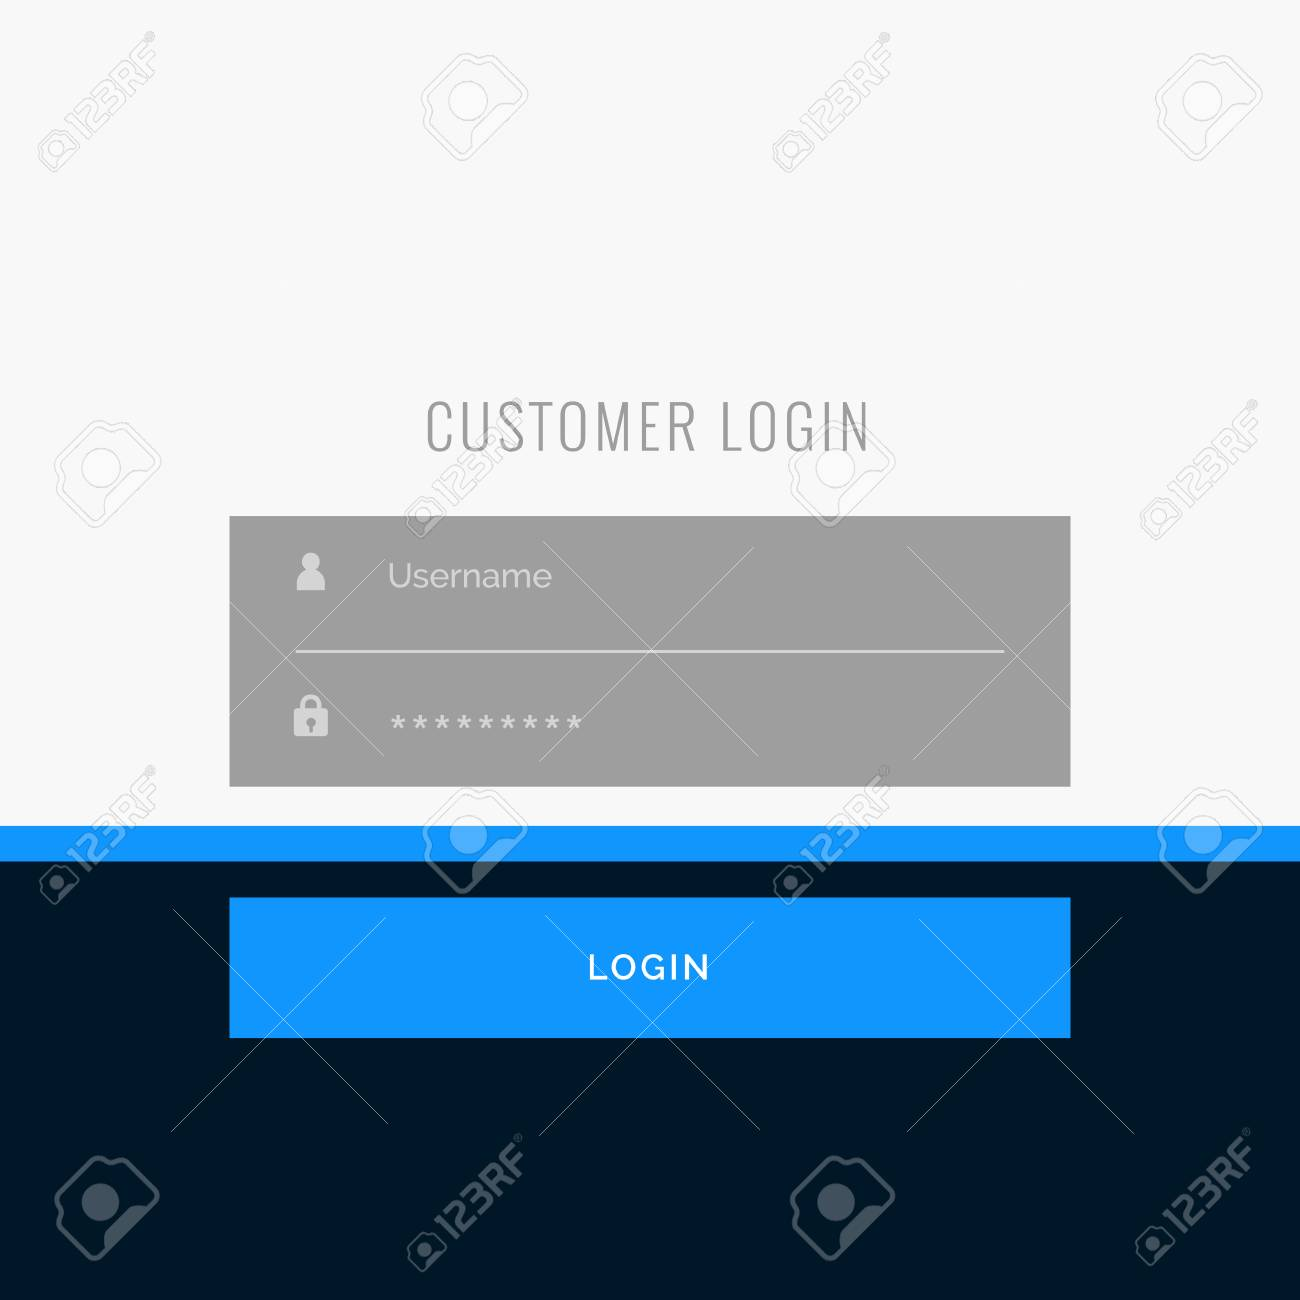 Flat Login Form Template Design For Your Web Or App Projects Royalty ...